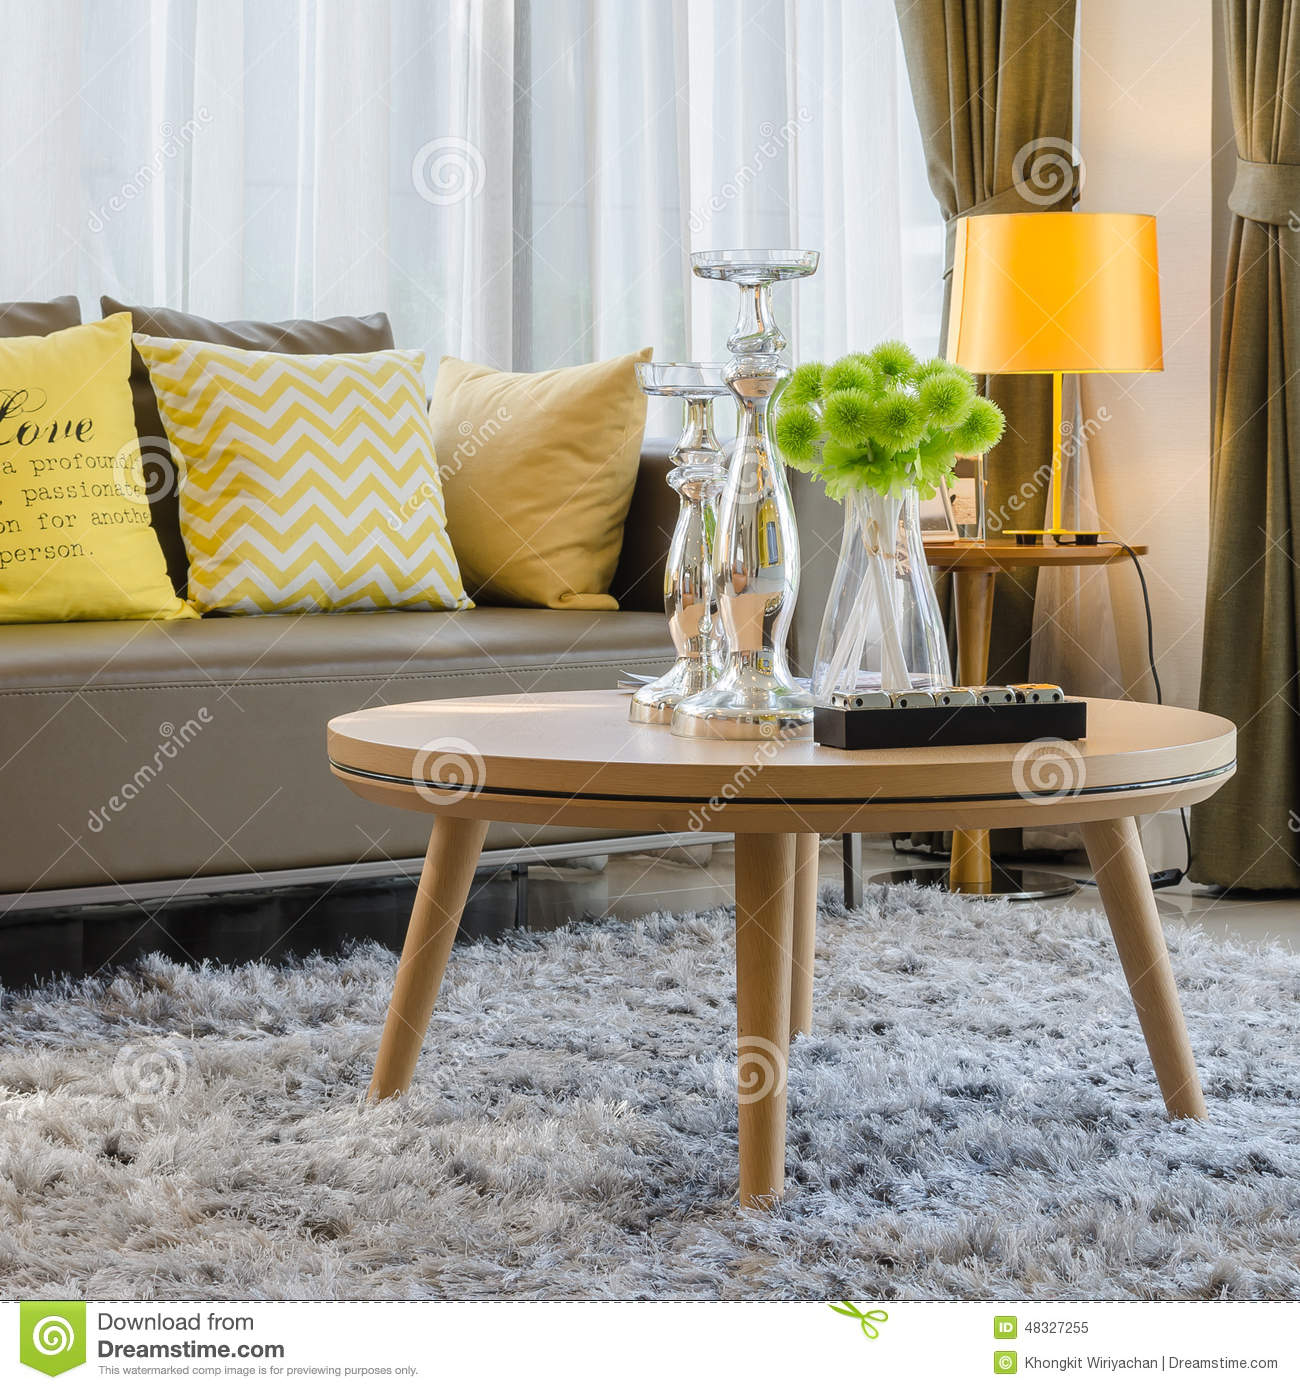 living room round table beautiful rooms images wooden on carpet in stock image of